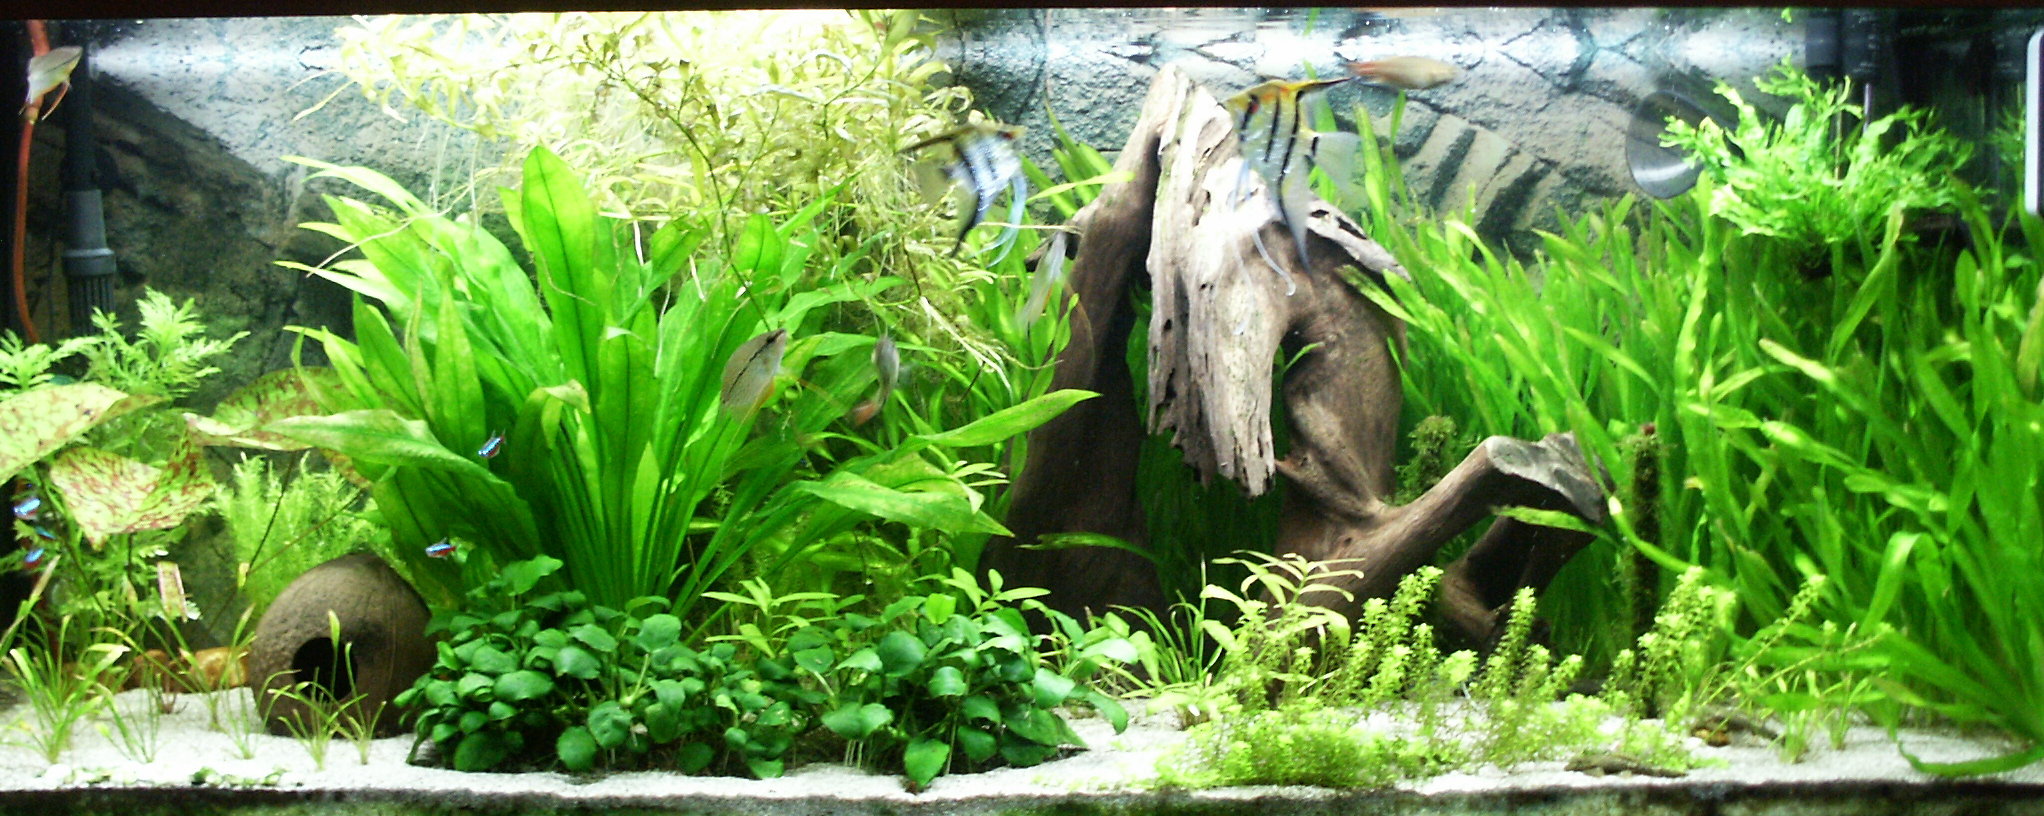 Densely-planted tropical fish tank. View larger image to spot the ...